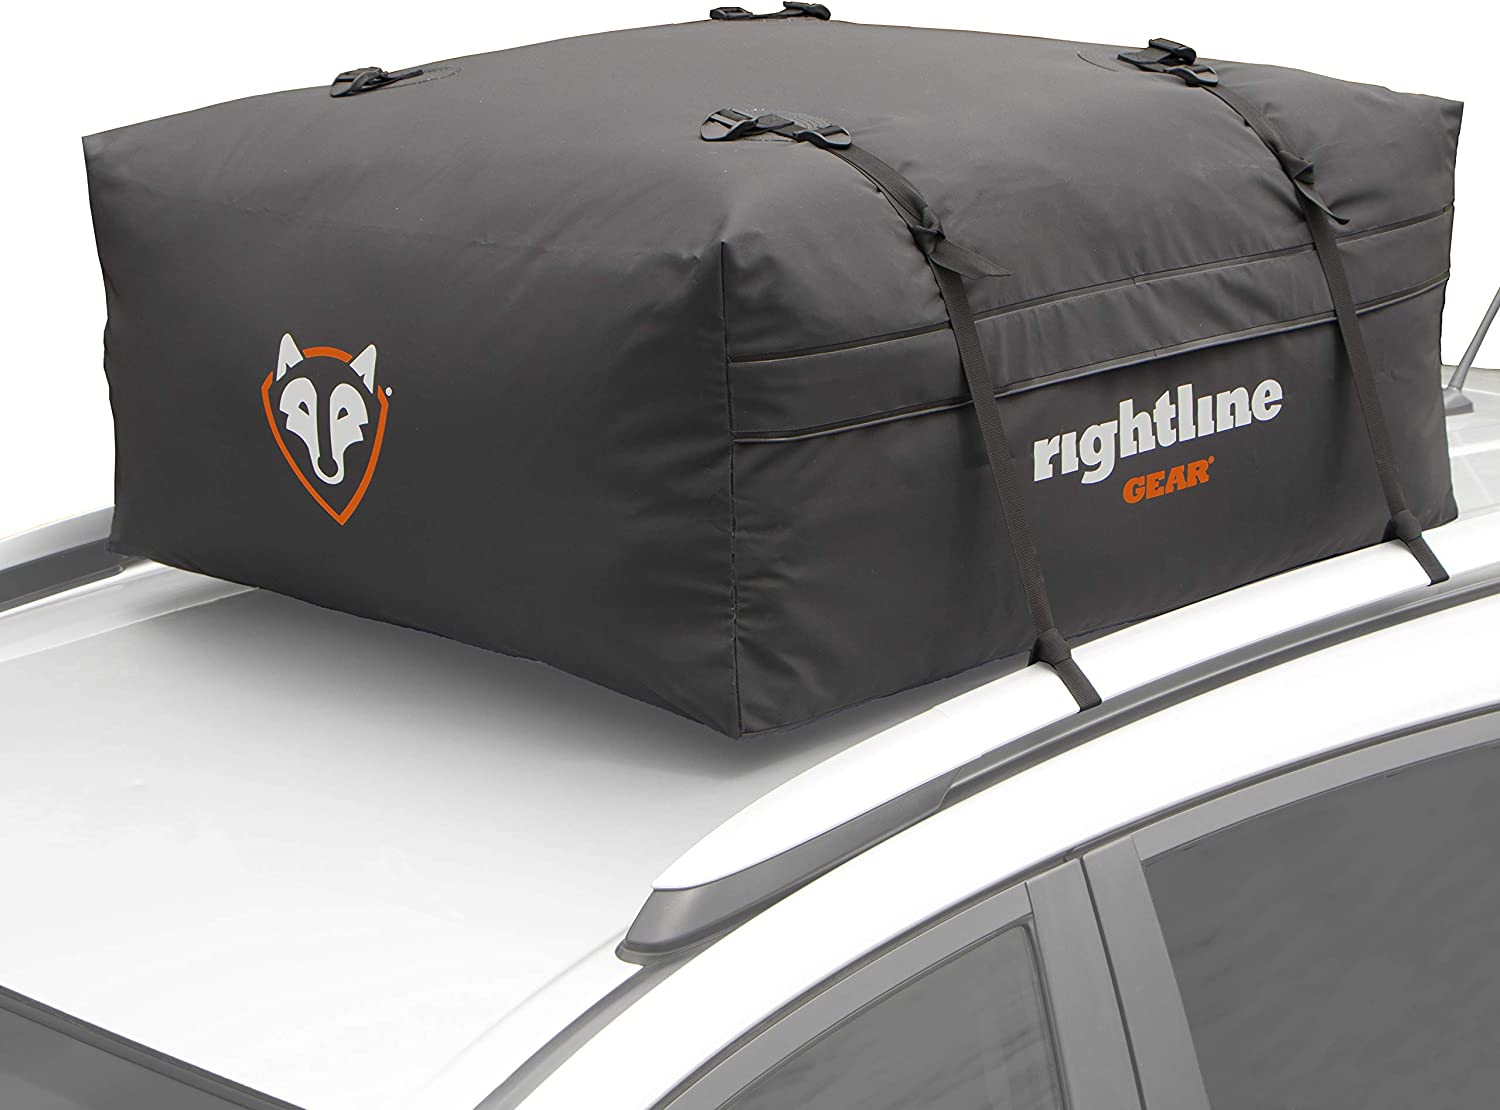 Rightline Gear Range Jr Car Rooftop Cargo Carrier